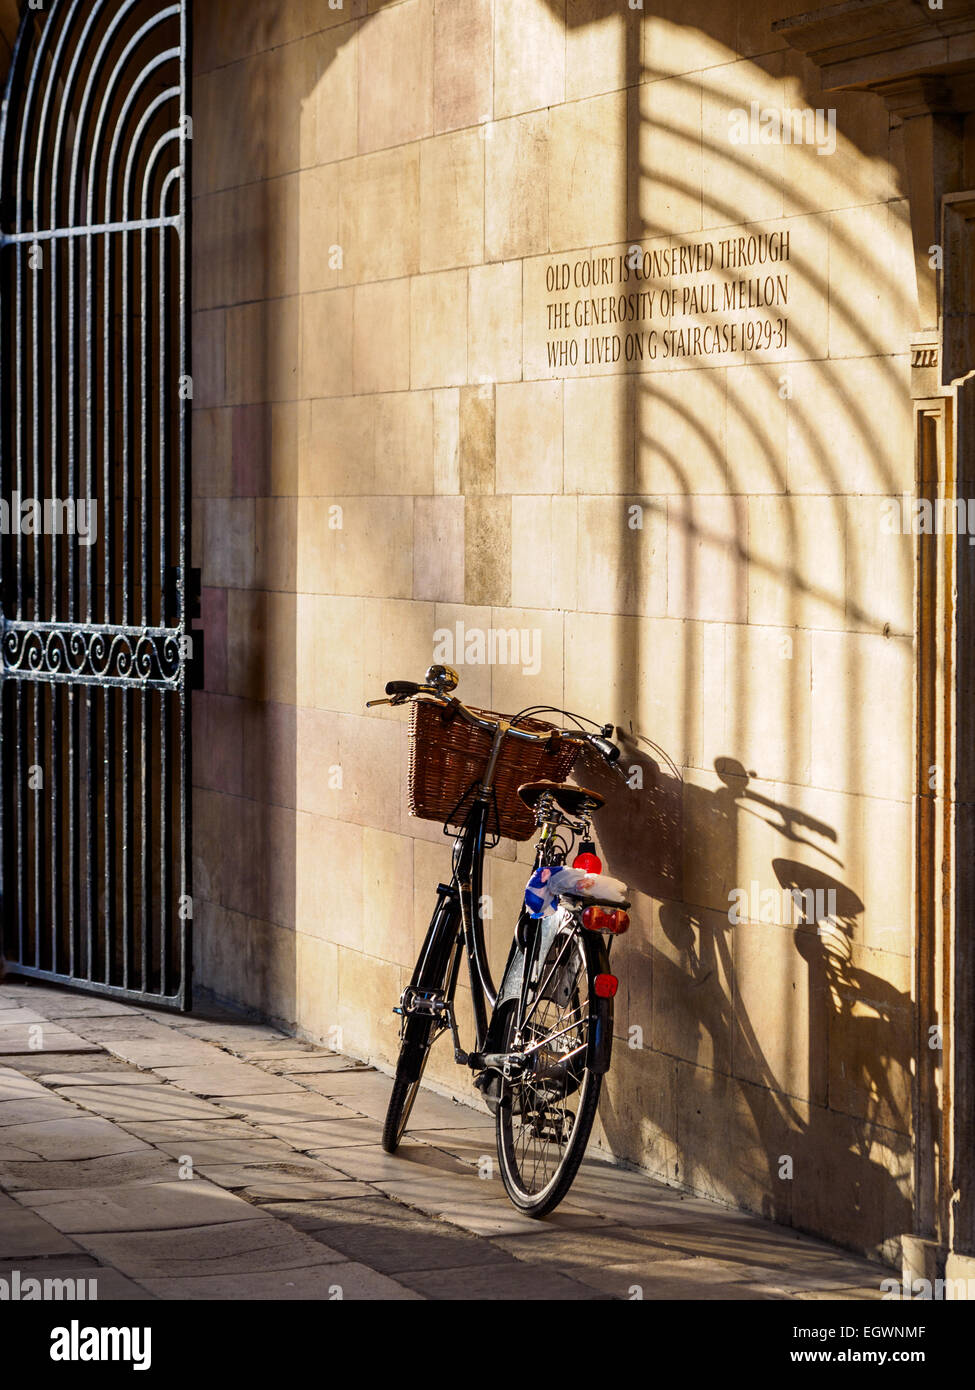 Cambridge Tourism Clare College - vintage style college bike parked in a picturesque gateway in Clare College, Cambridge - Stock Image